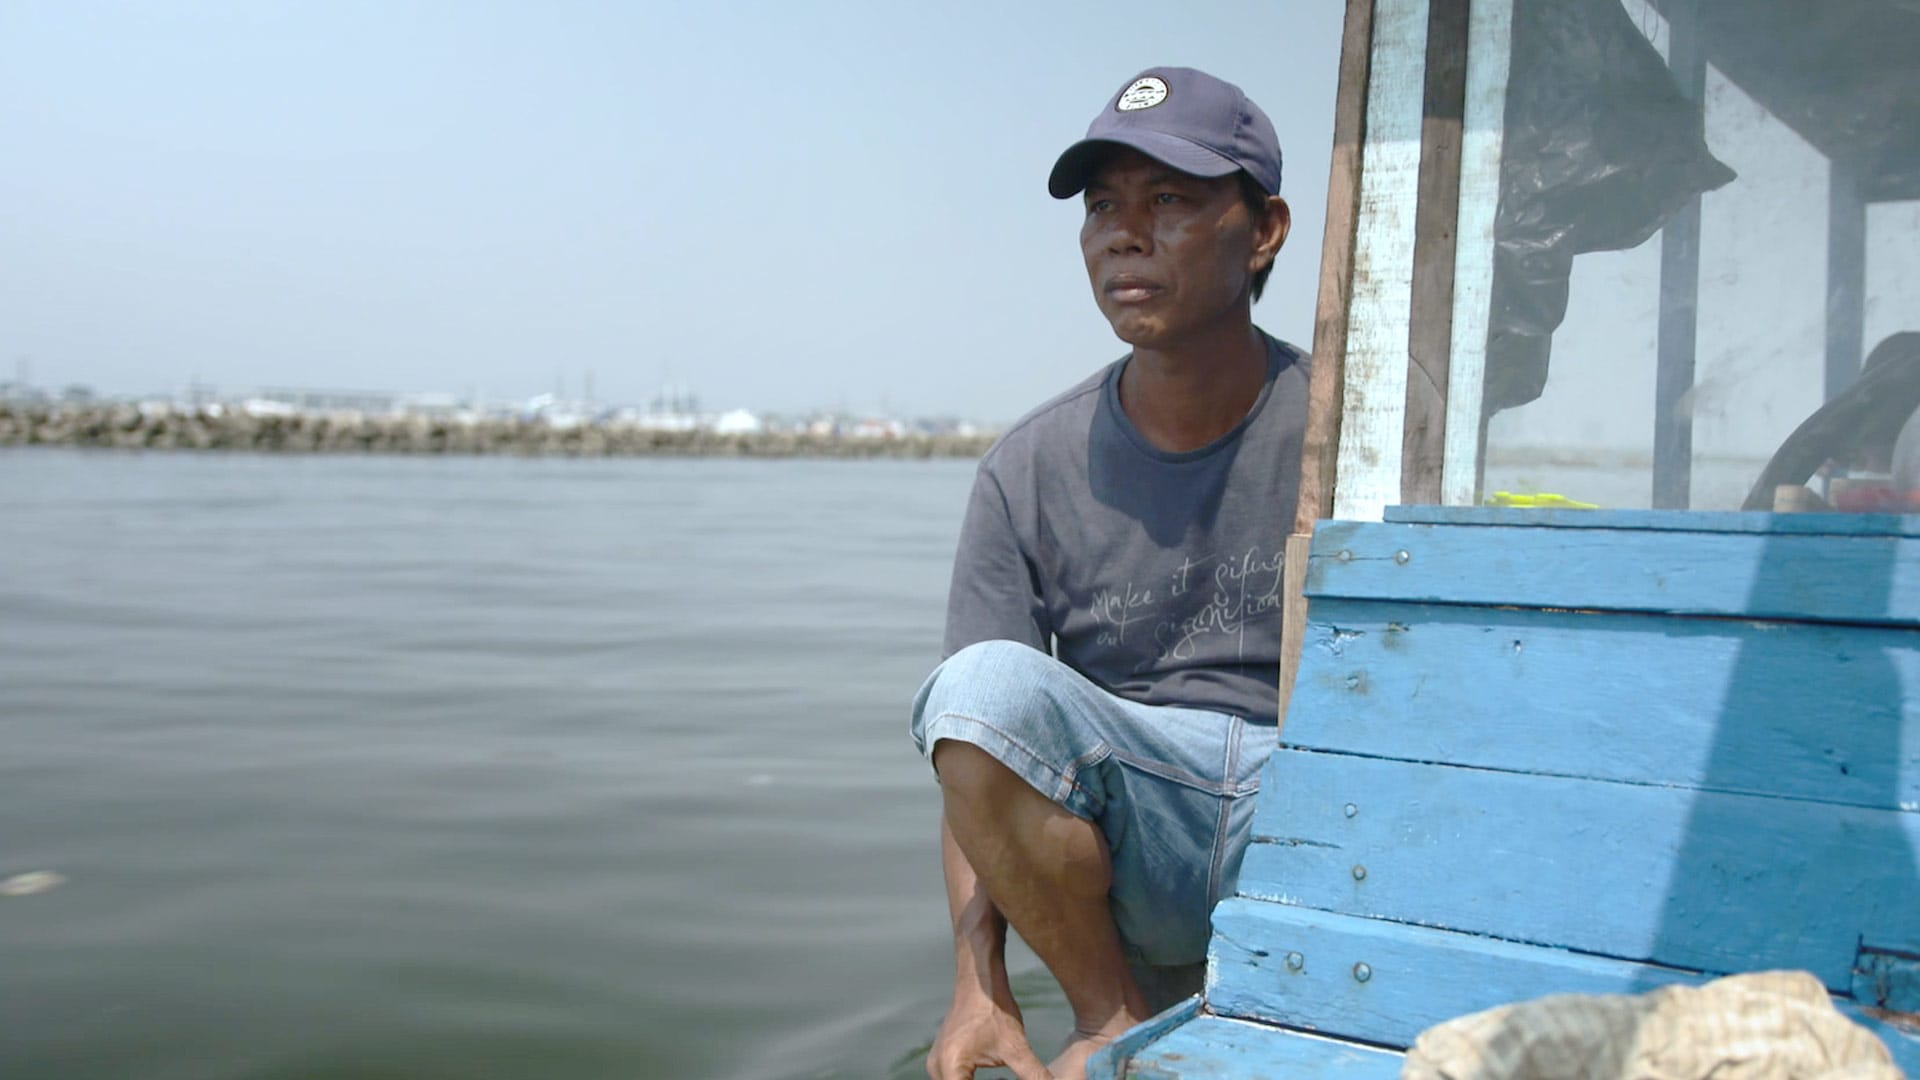 'It's hard to work as a fisherman': Indonesian fishermen fret about livelihoods amid reclamation | Video